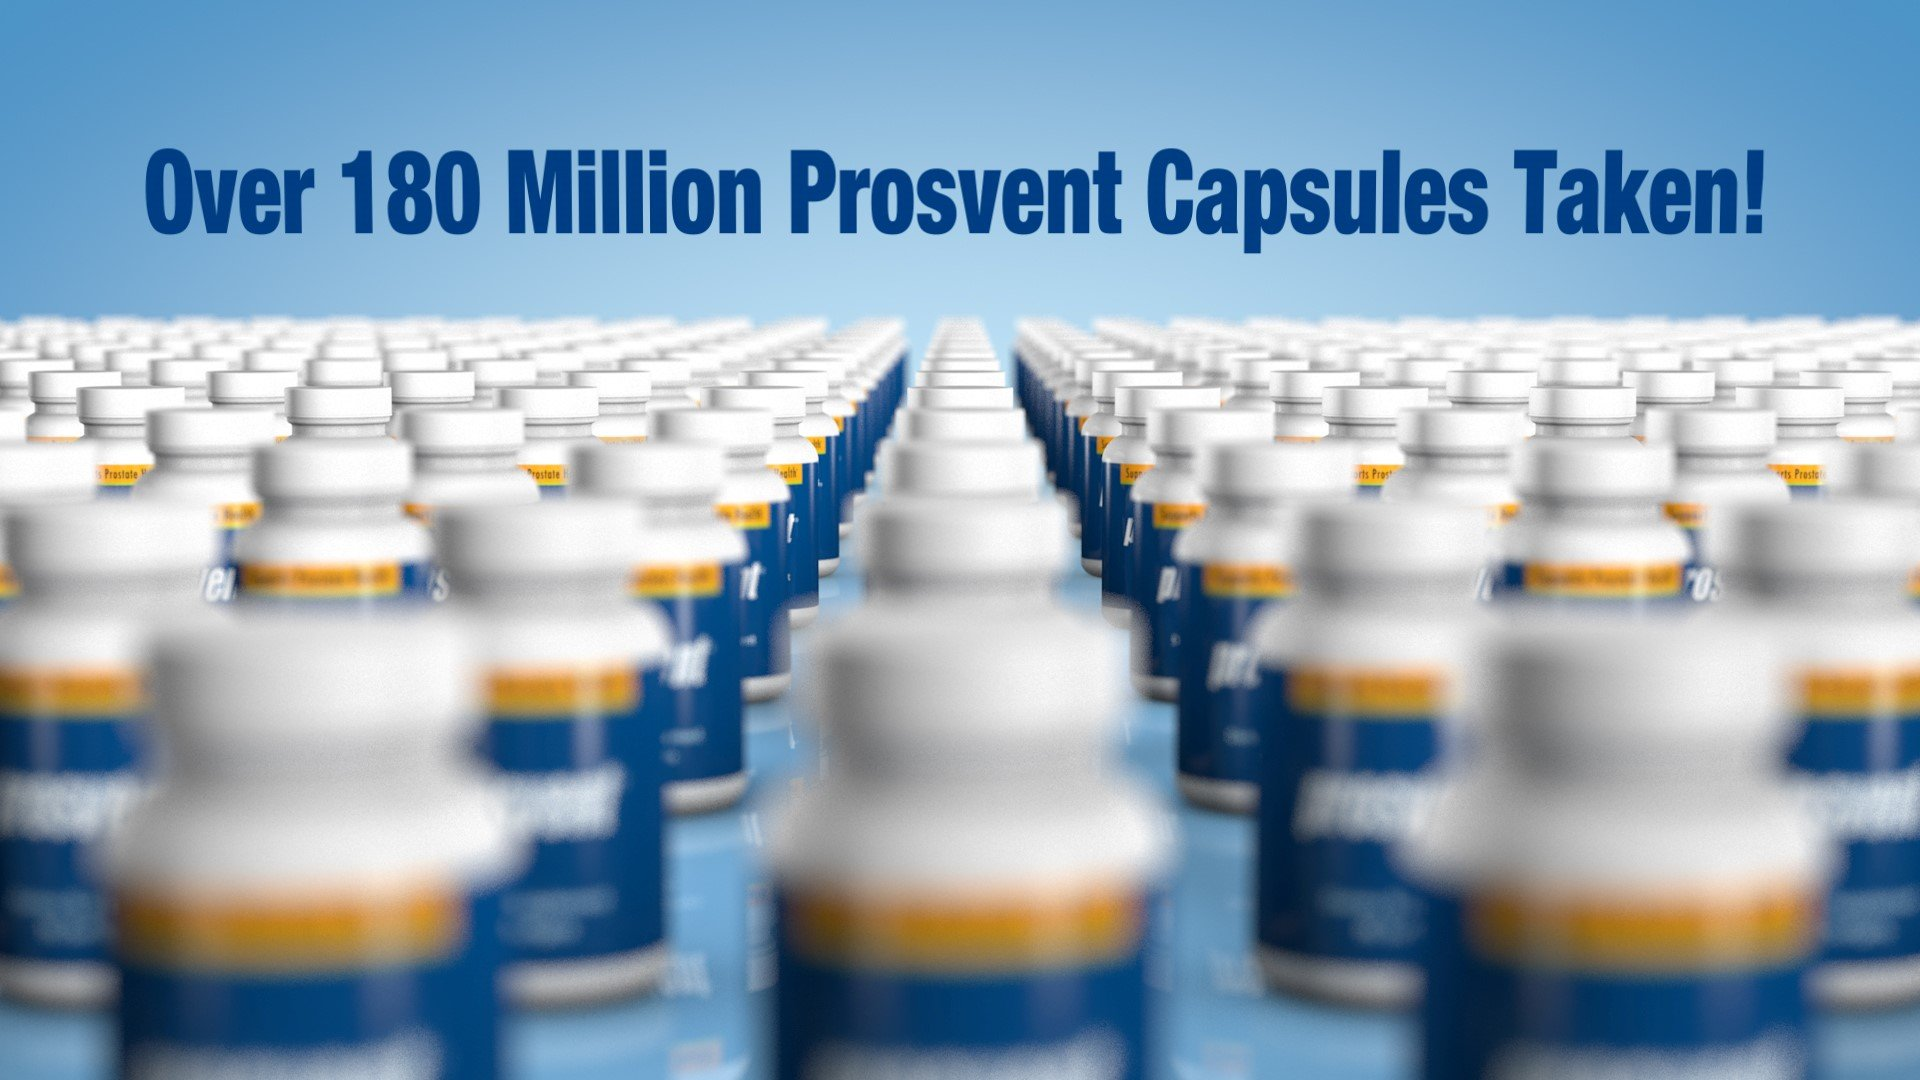 PROSVENT-NATURAL PROSTATE HEALTH SUPPLEMENT -Clinically Tested Ingredients- Reduce Urgency & Frequency. Improve Flow, Sleep, Health & Quality Of Life. OVER 180 MILLION DOSES SOLD! –3 Month Supply by Prosvent (Image #3)